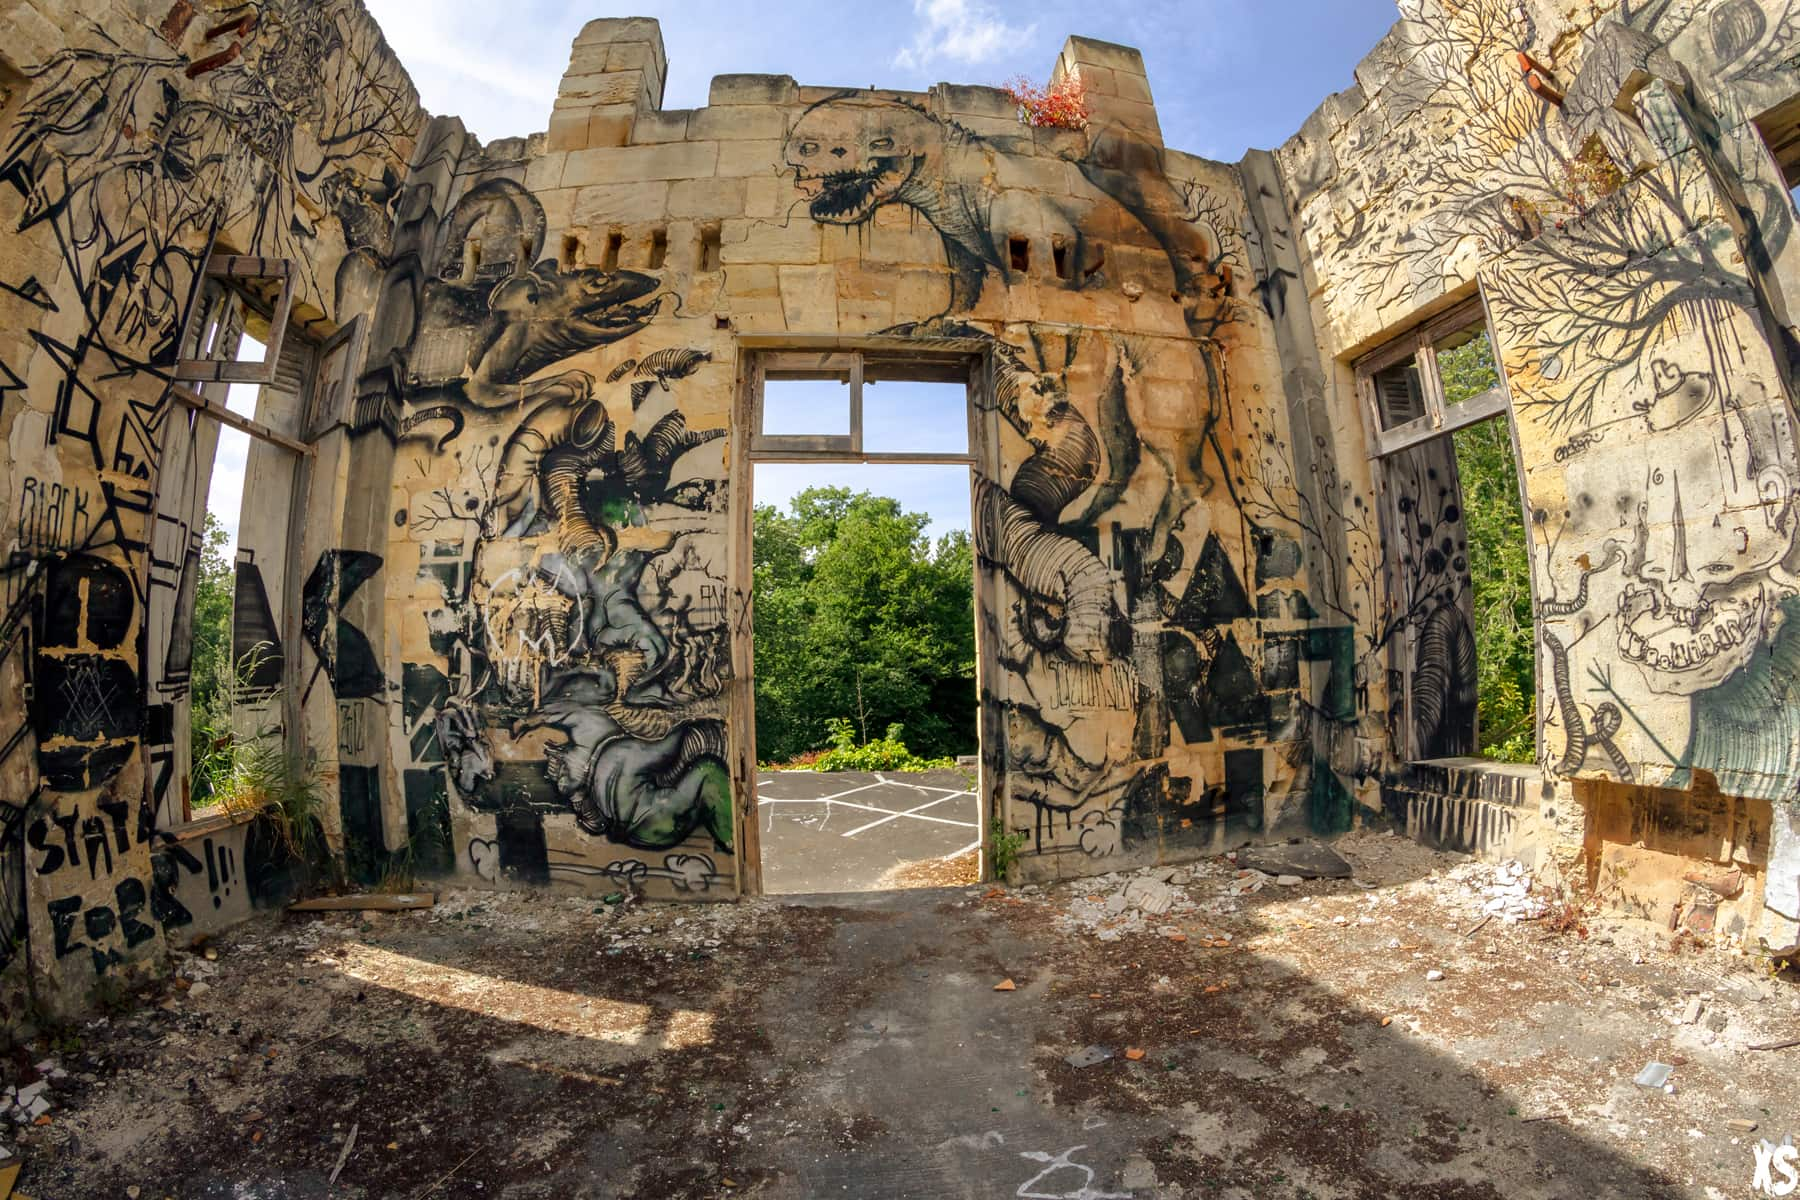 Château du Grand Dragon situé à Bouliac | urbexsession.com/chateau-du-grand-dragon-bouliac | Urbex France Gironde